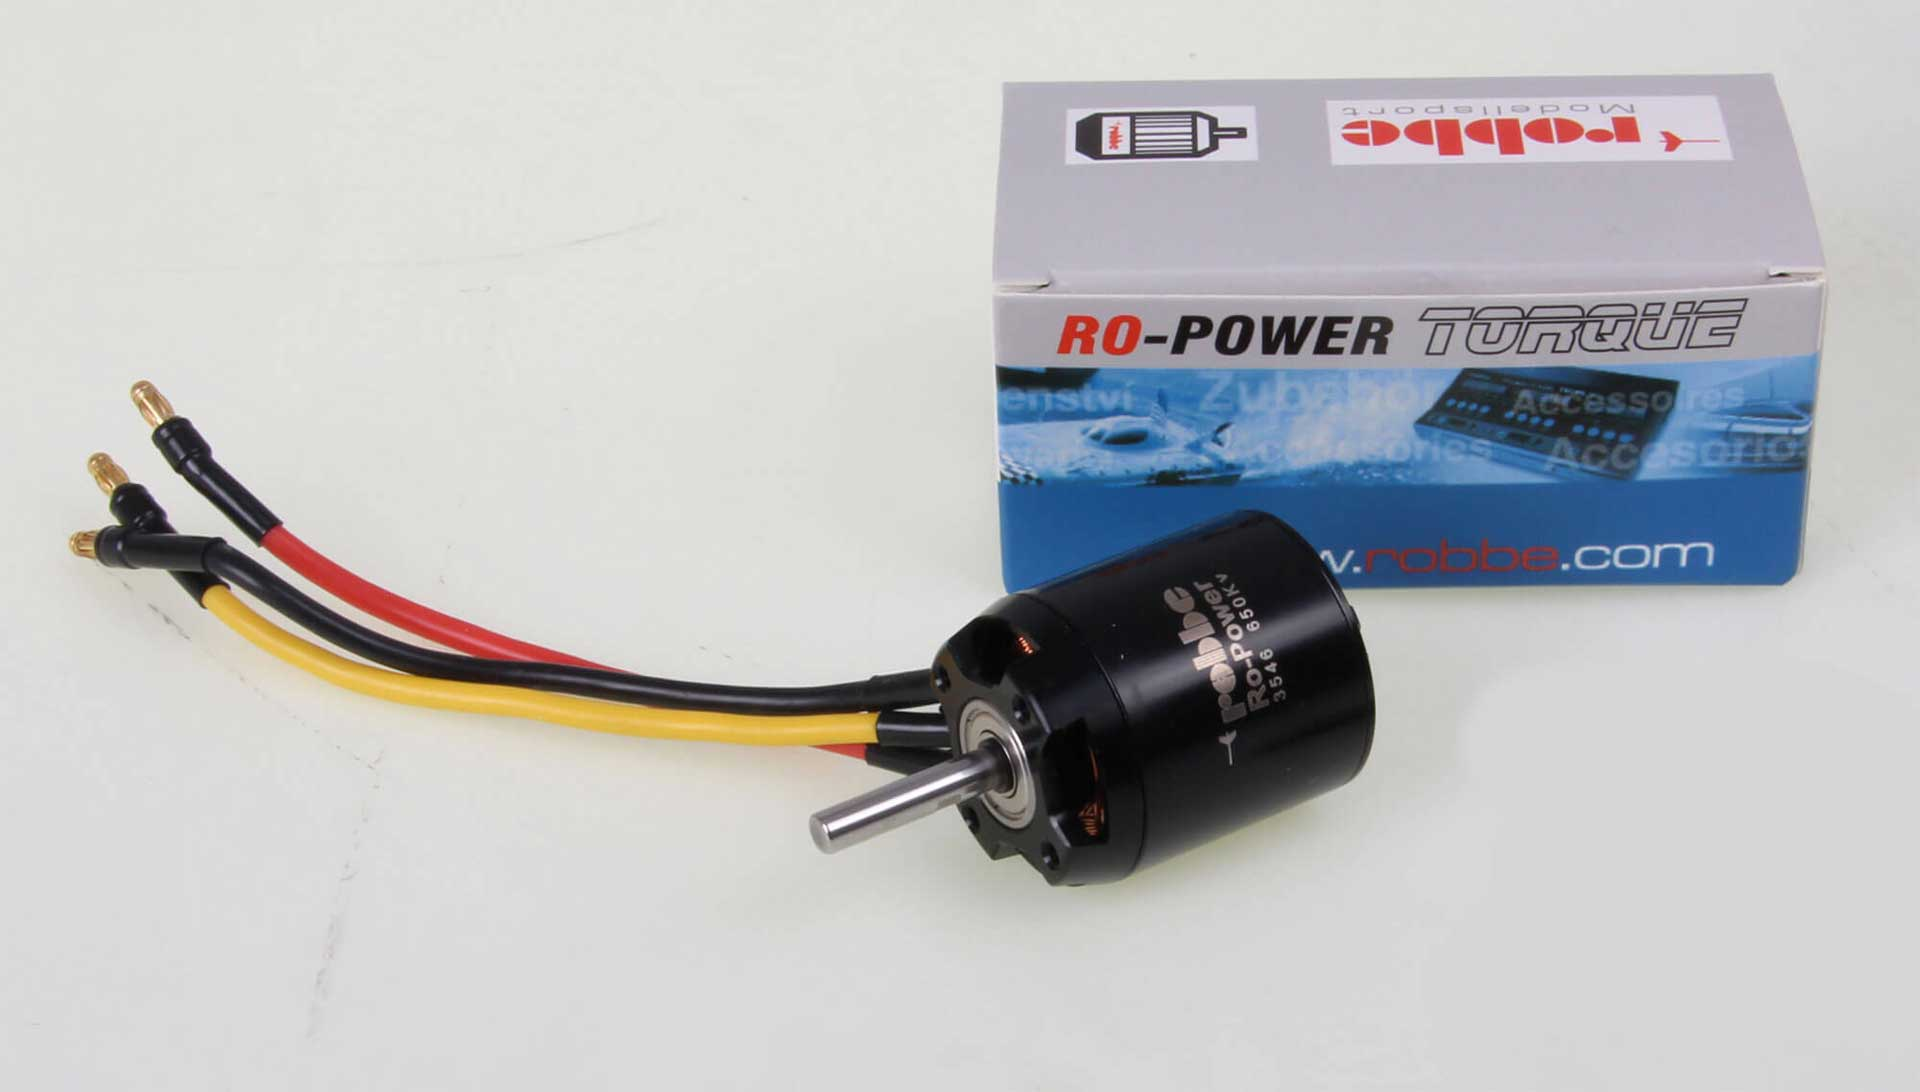 ROBBE RO-POWER TORQUE 3546 650 K/V BRUSHLESS